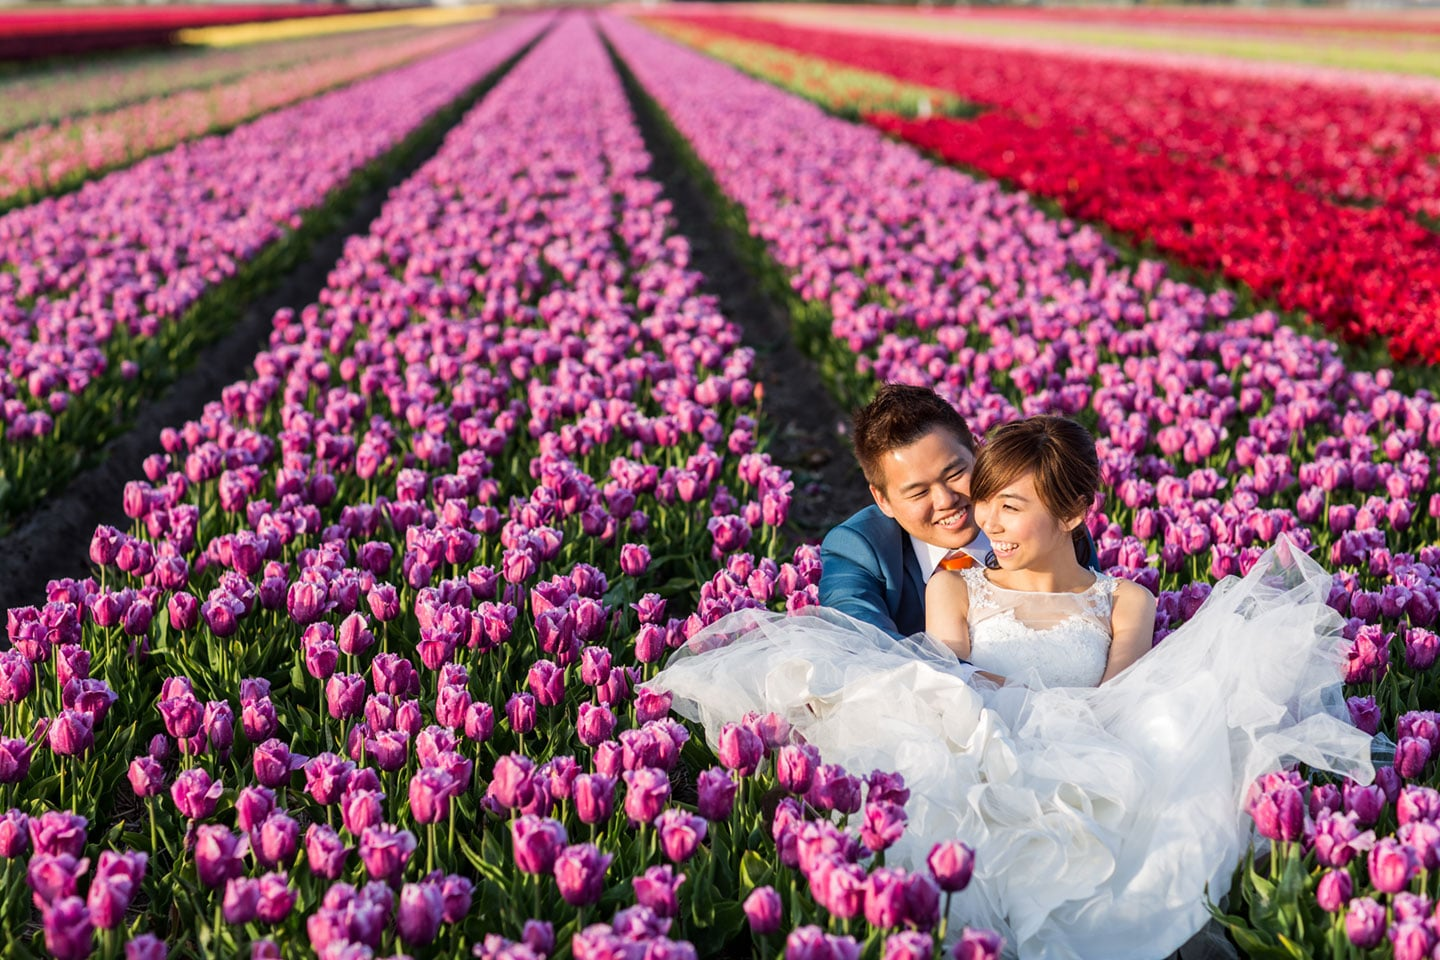 Amsterdam Tulip Fields photographer